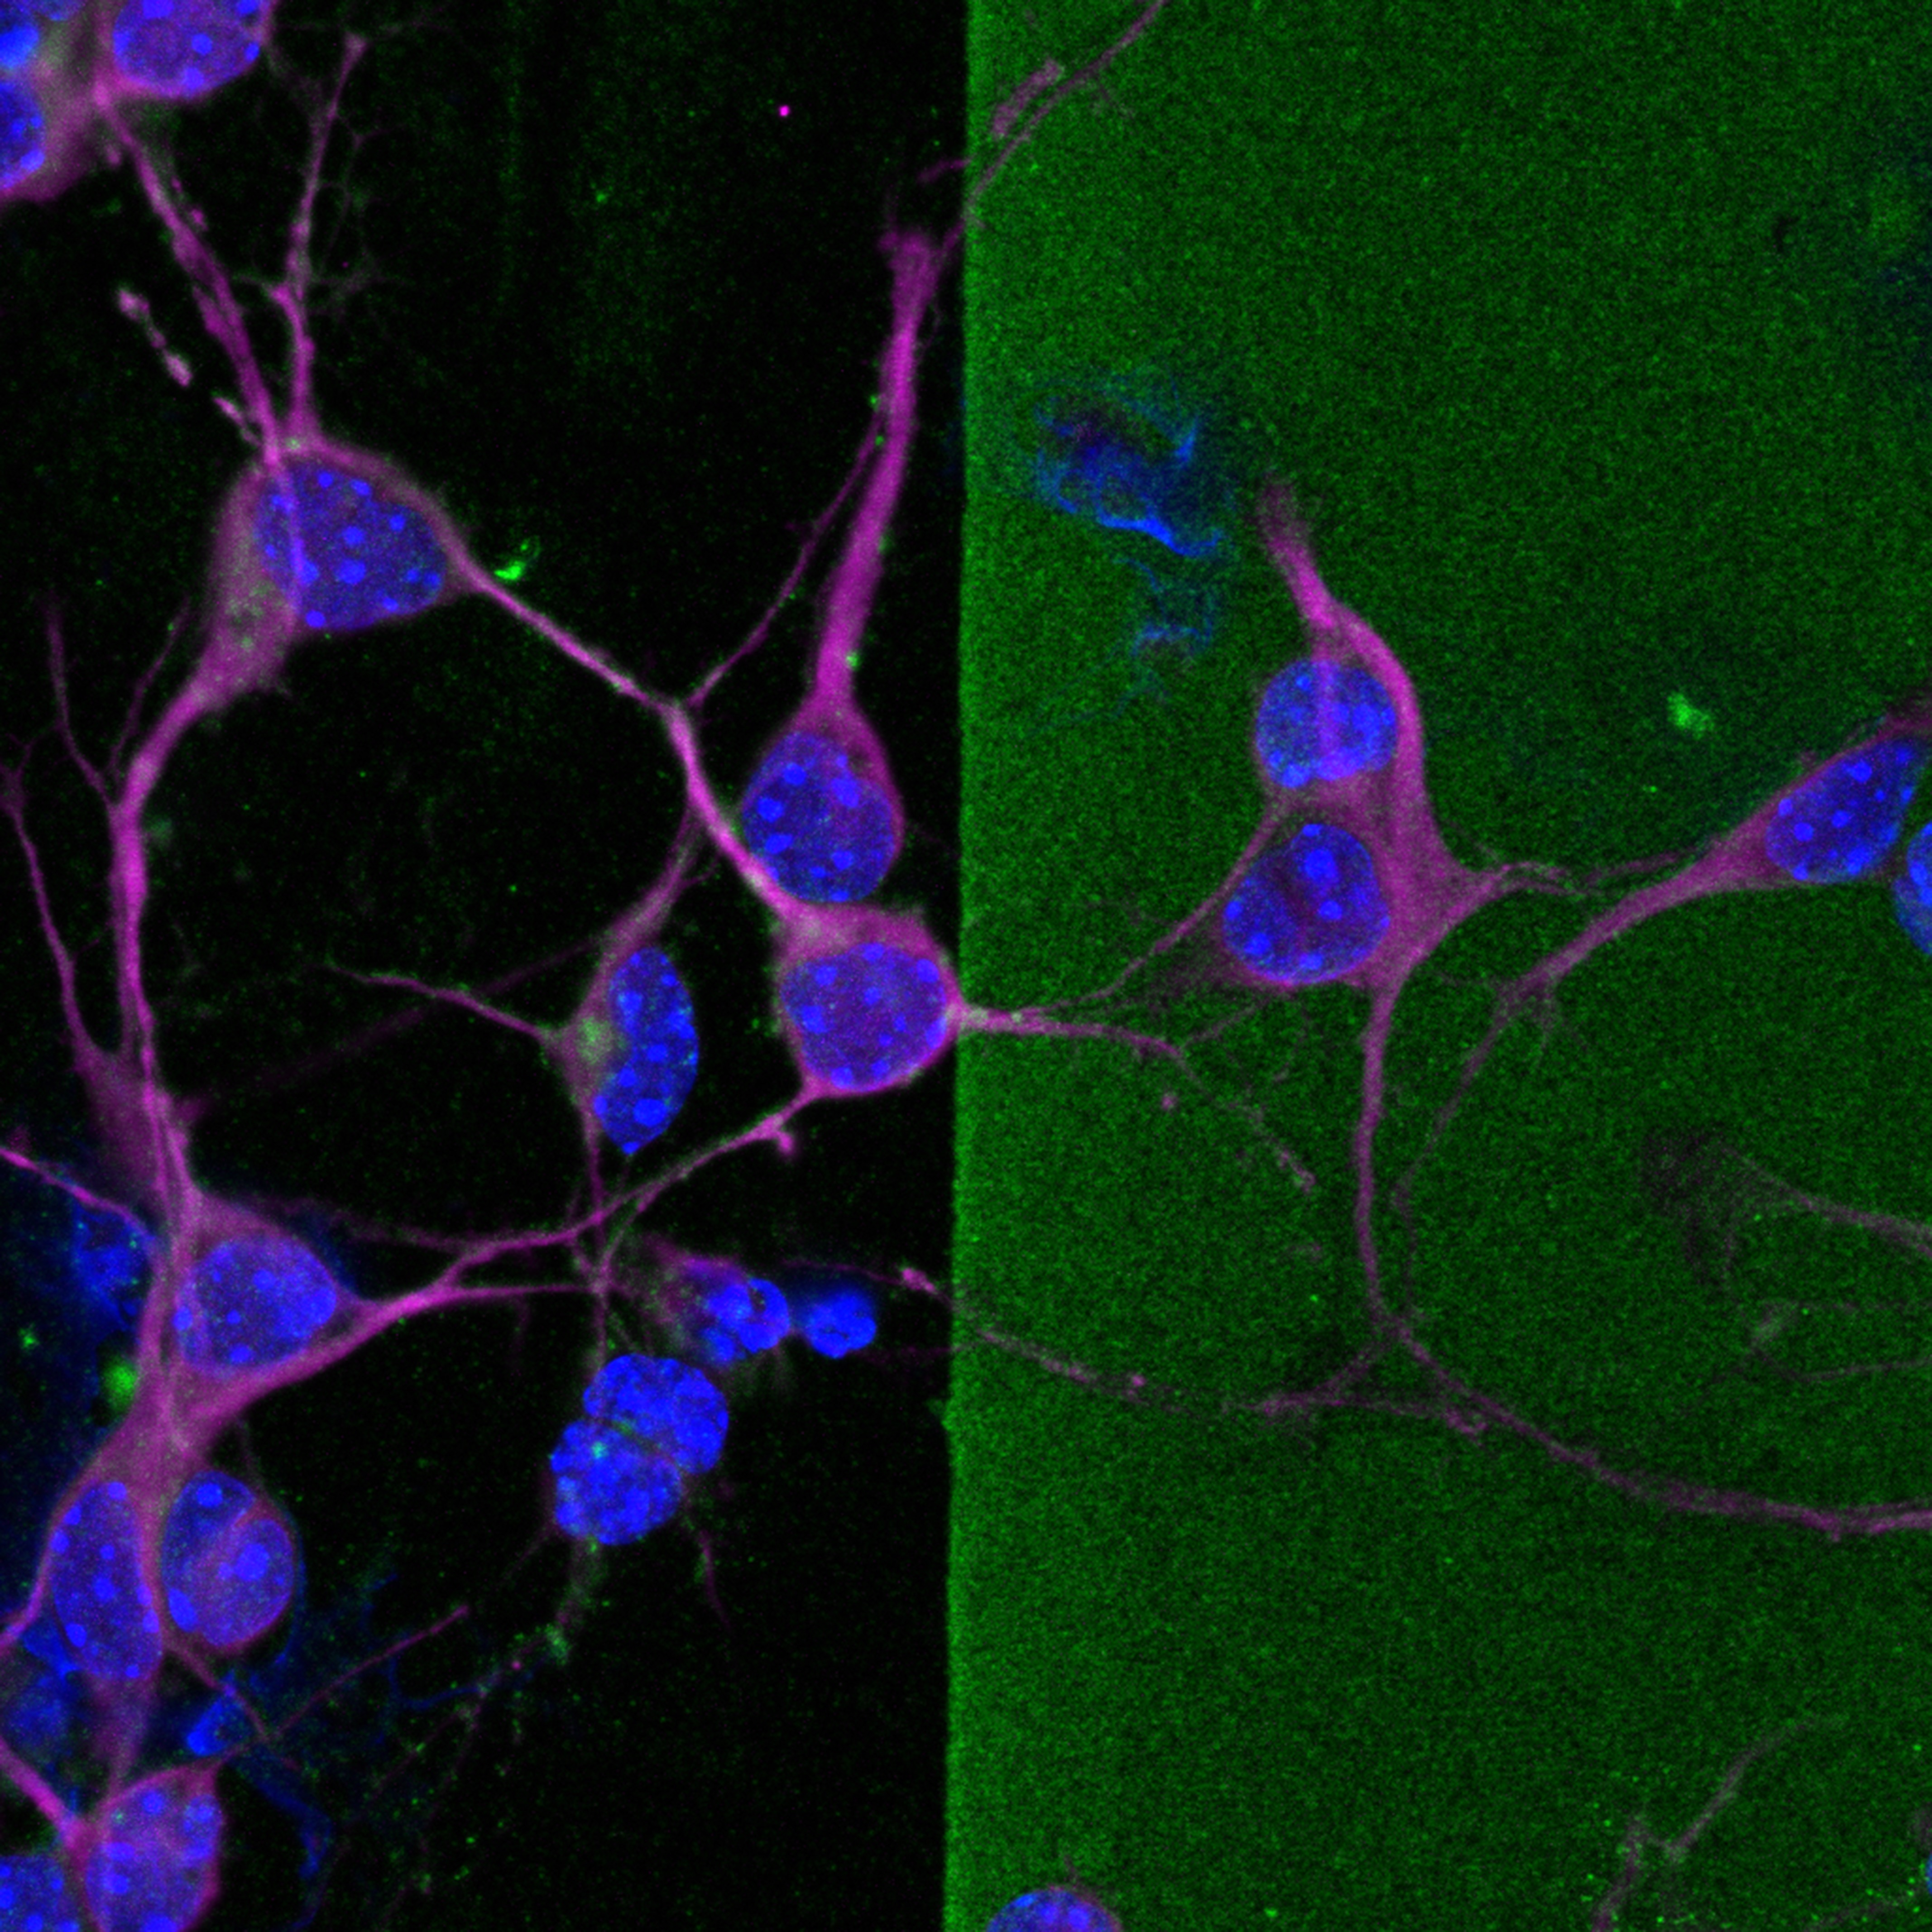 MAP2+ (magenta) neurites from cultured immature cortical neurons extending into a stripe of chondroitin sulfate proteoglycans (CSPGs; green) treated with chondroitinase ABC (chABC), an enzyme that abolishes CSPGs